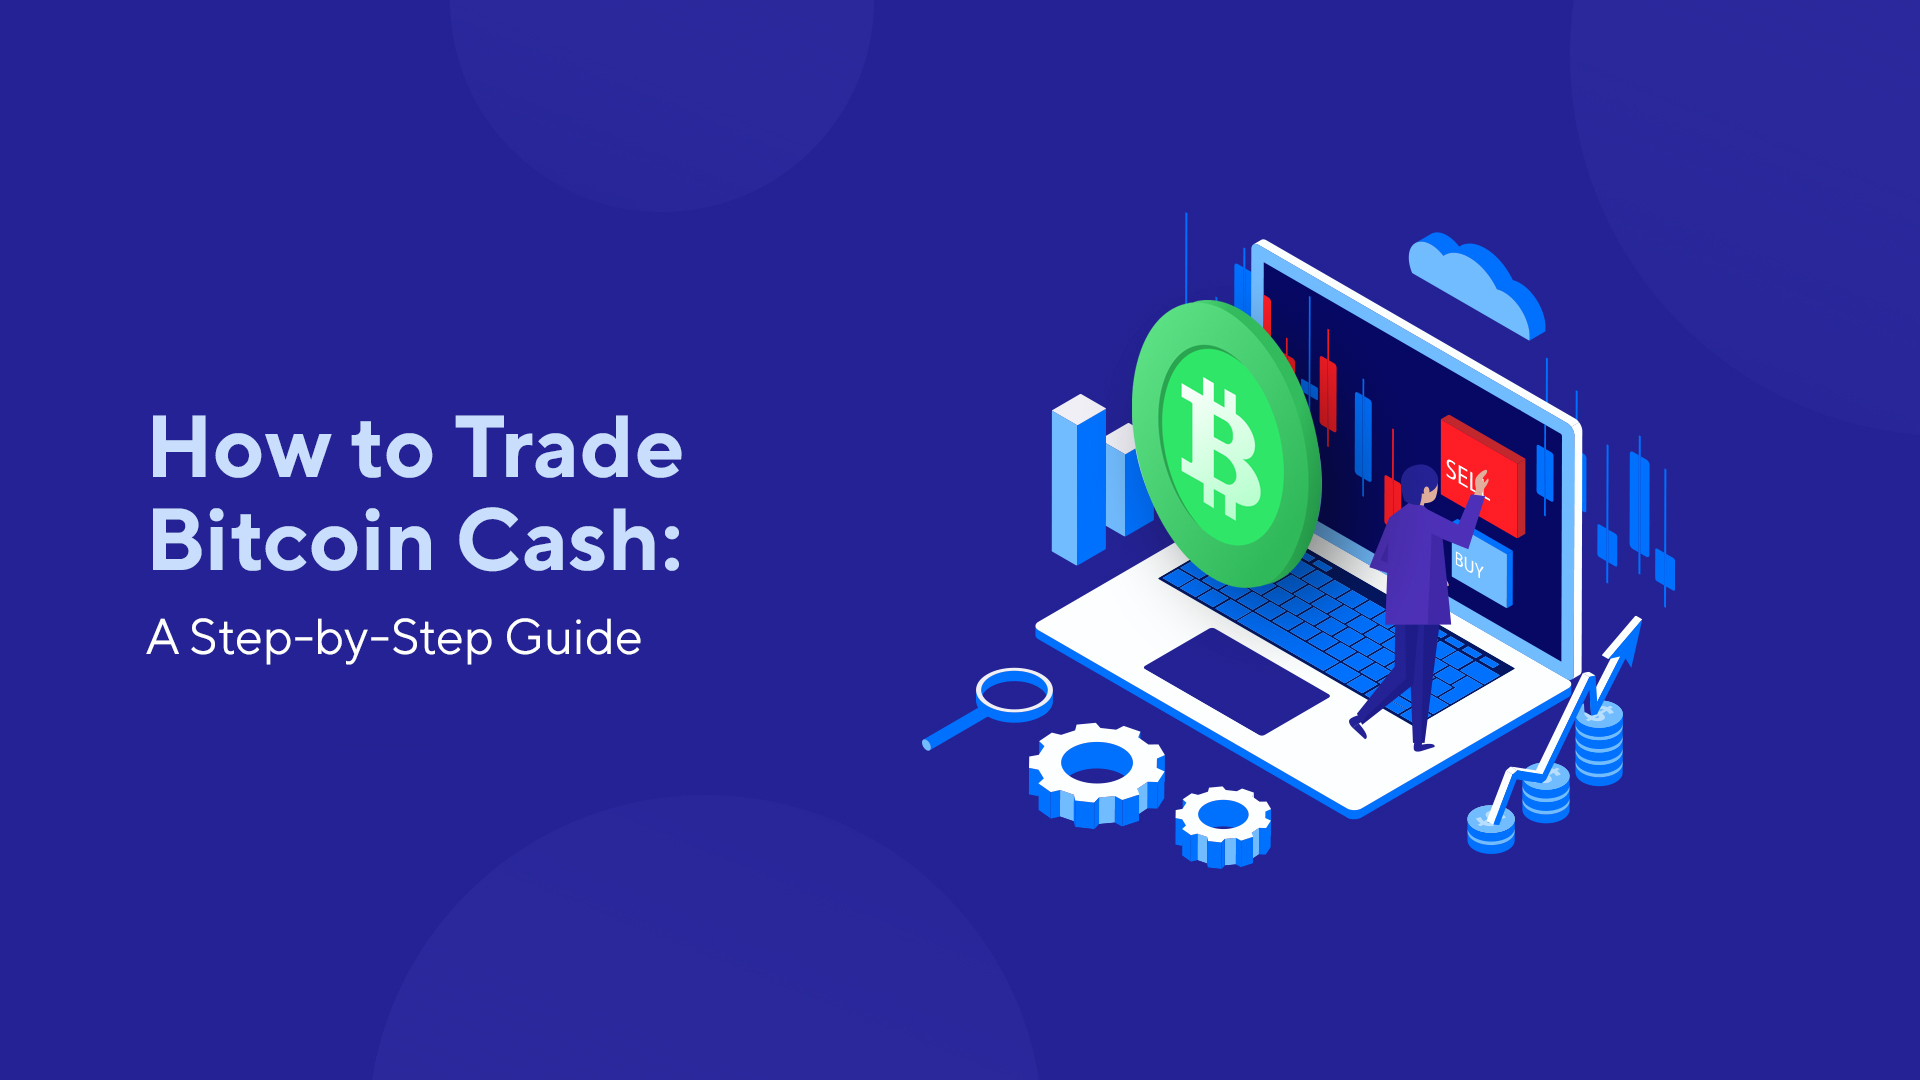 How to Trade Bitcoin Cash: A Step-by-Step Guide